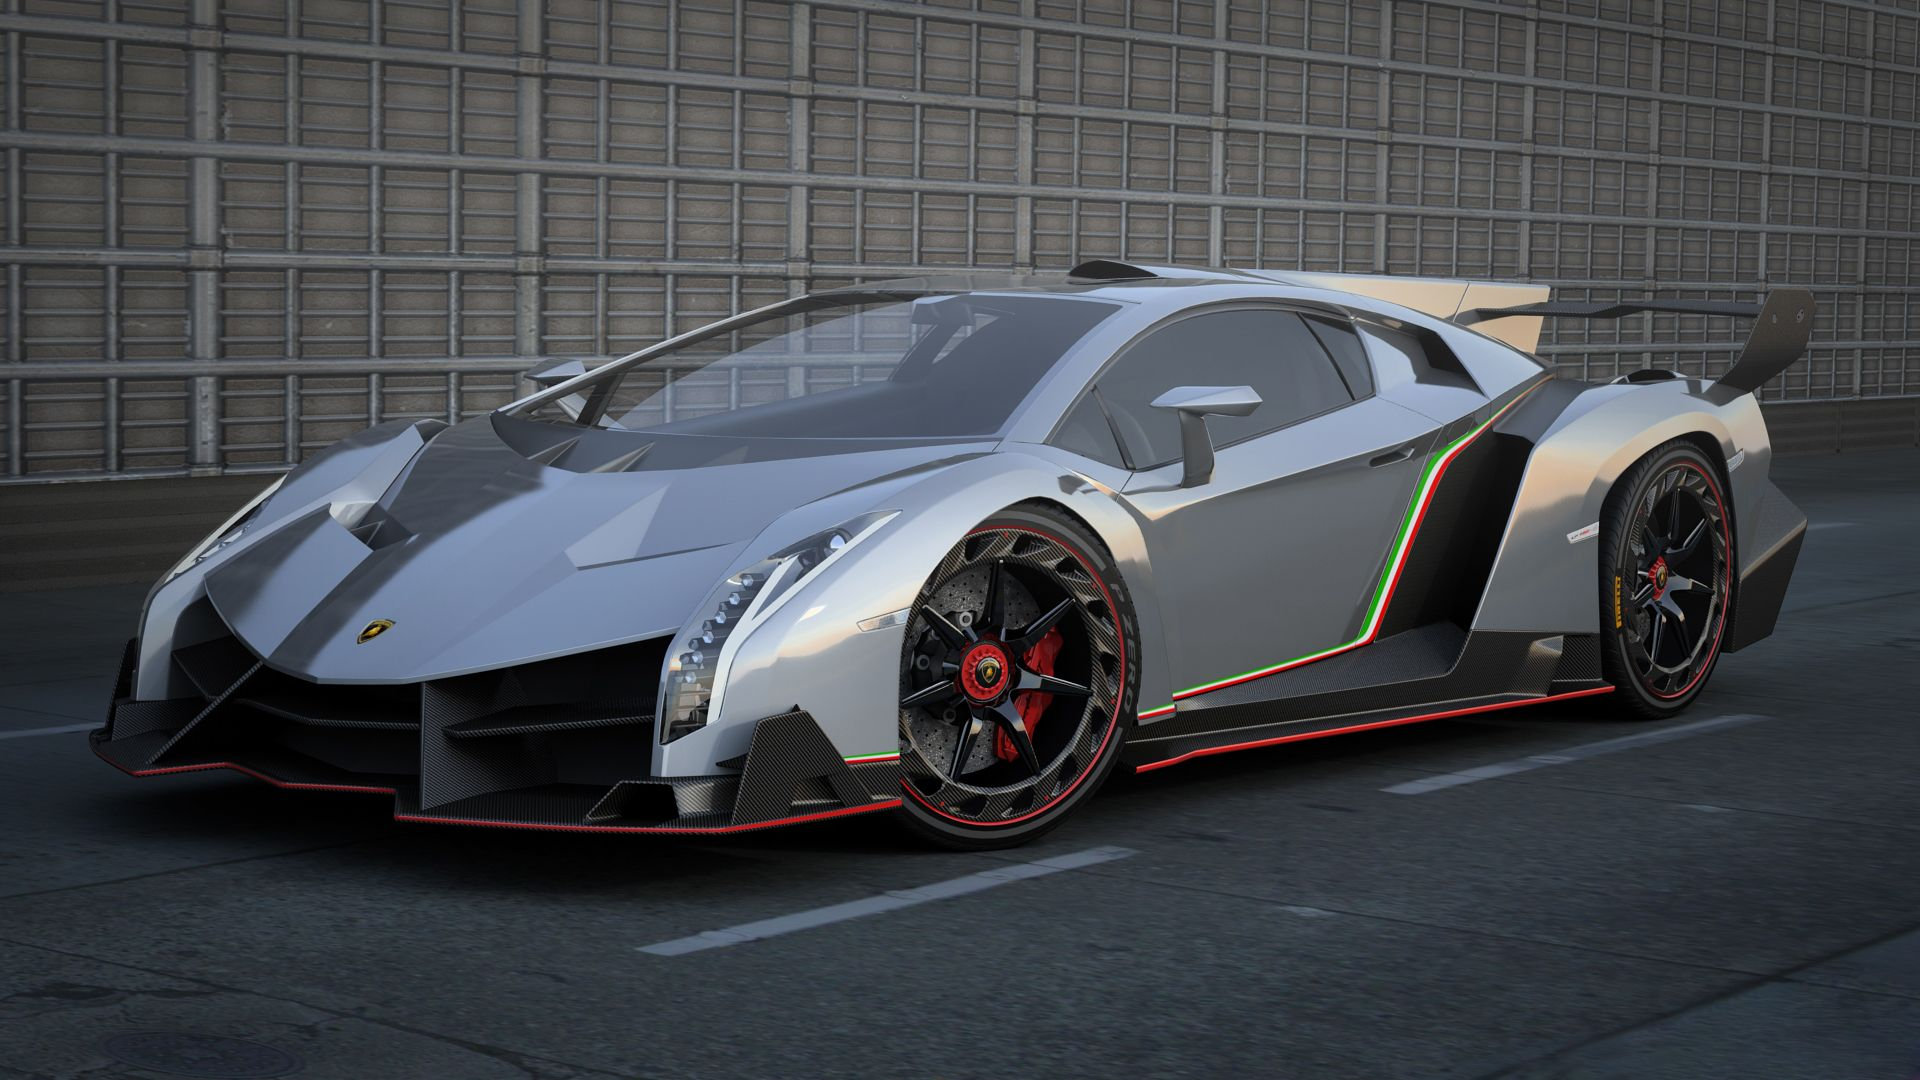 Lamborghini Veneno Super Sports Car Wallpapers And Backgrounds Amazing Car Wallpapers App